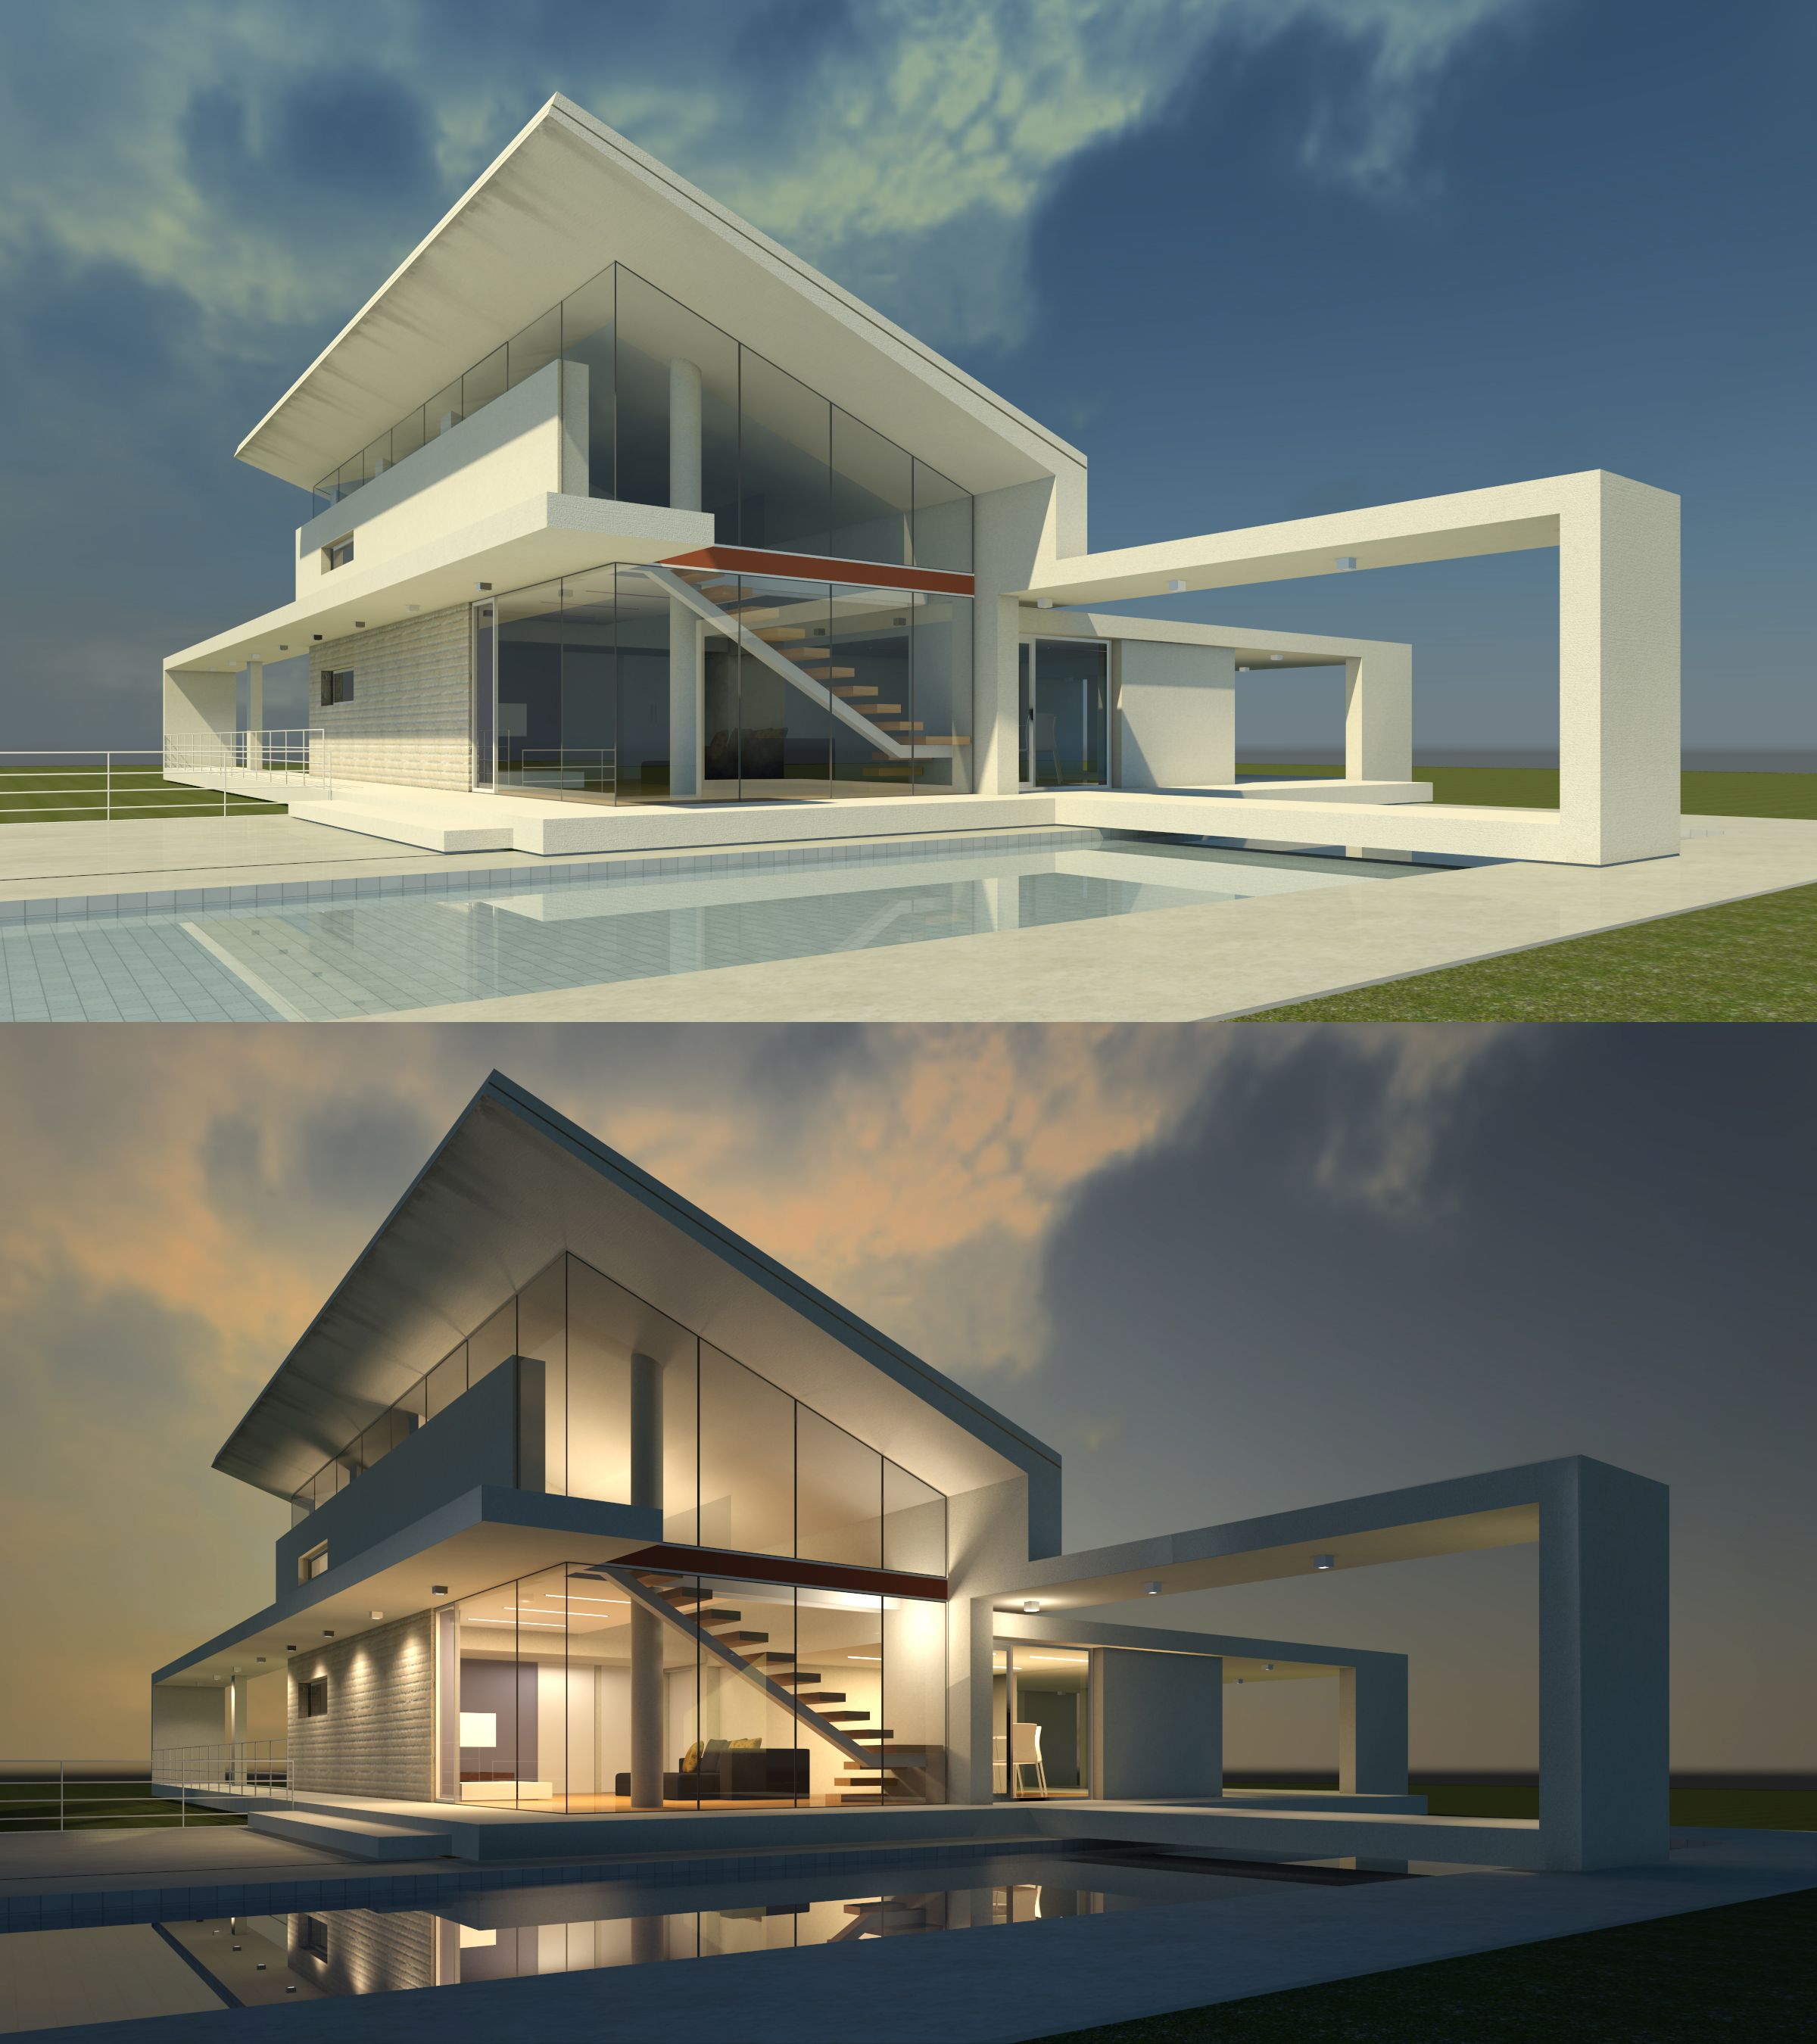 3d max exterior design design day and night ri akademi for Exterior 3d model